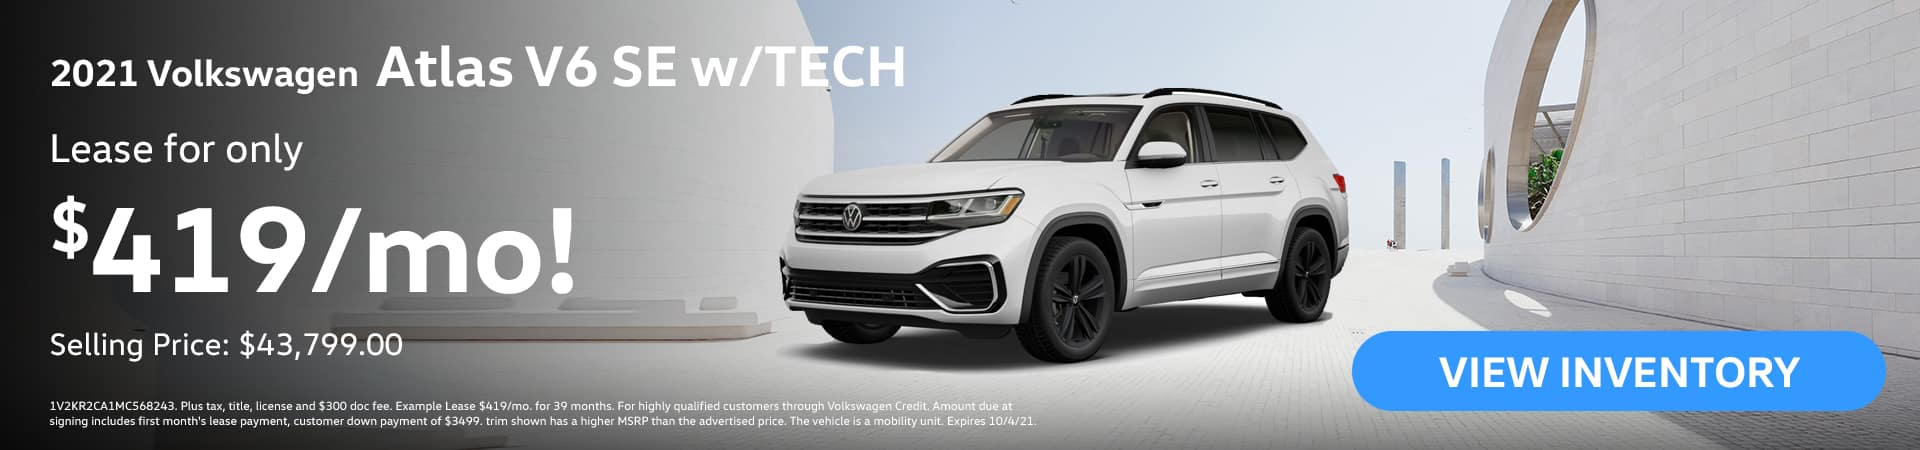 2021 Volkswagen Atlas V6 SE w/TECH Lease for ONLY $419/month Selling Price: $43,799.00